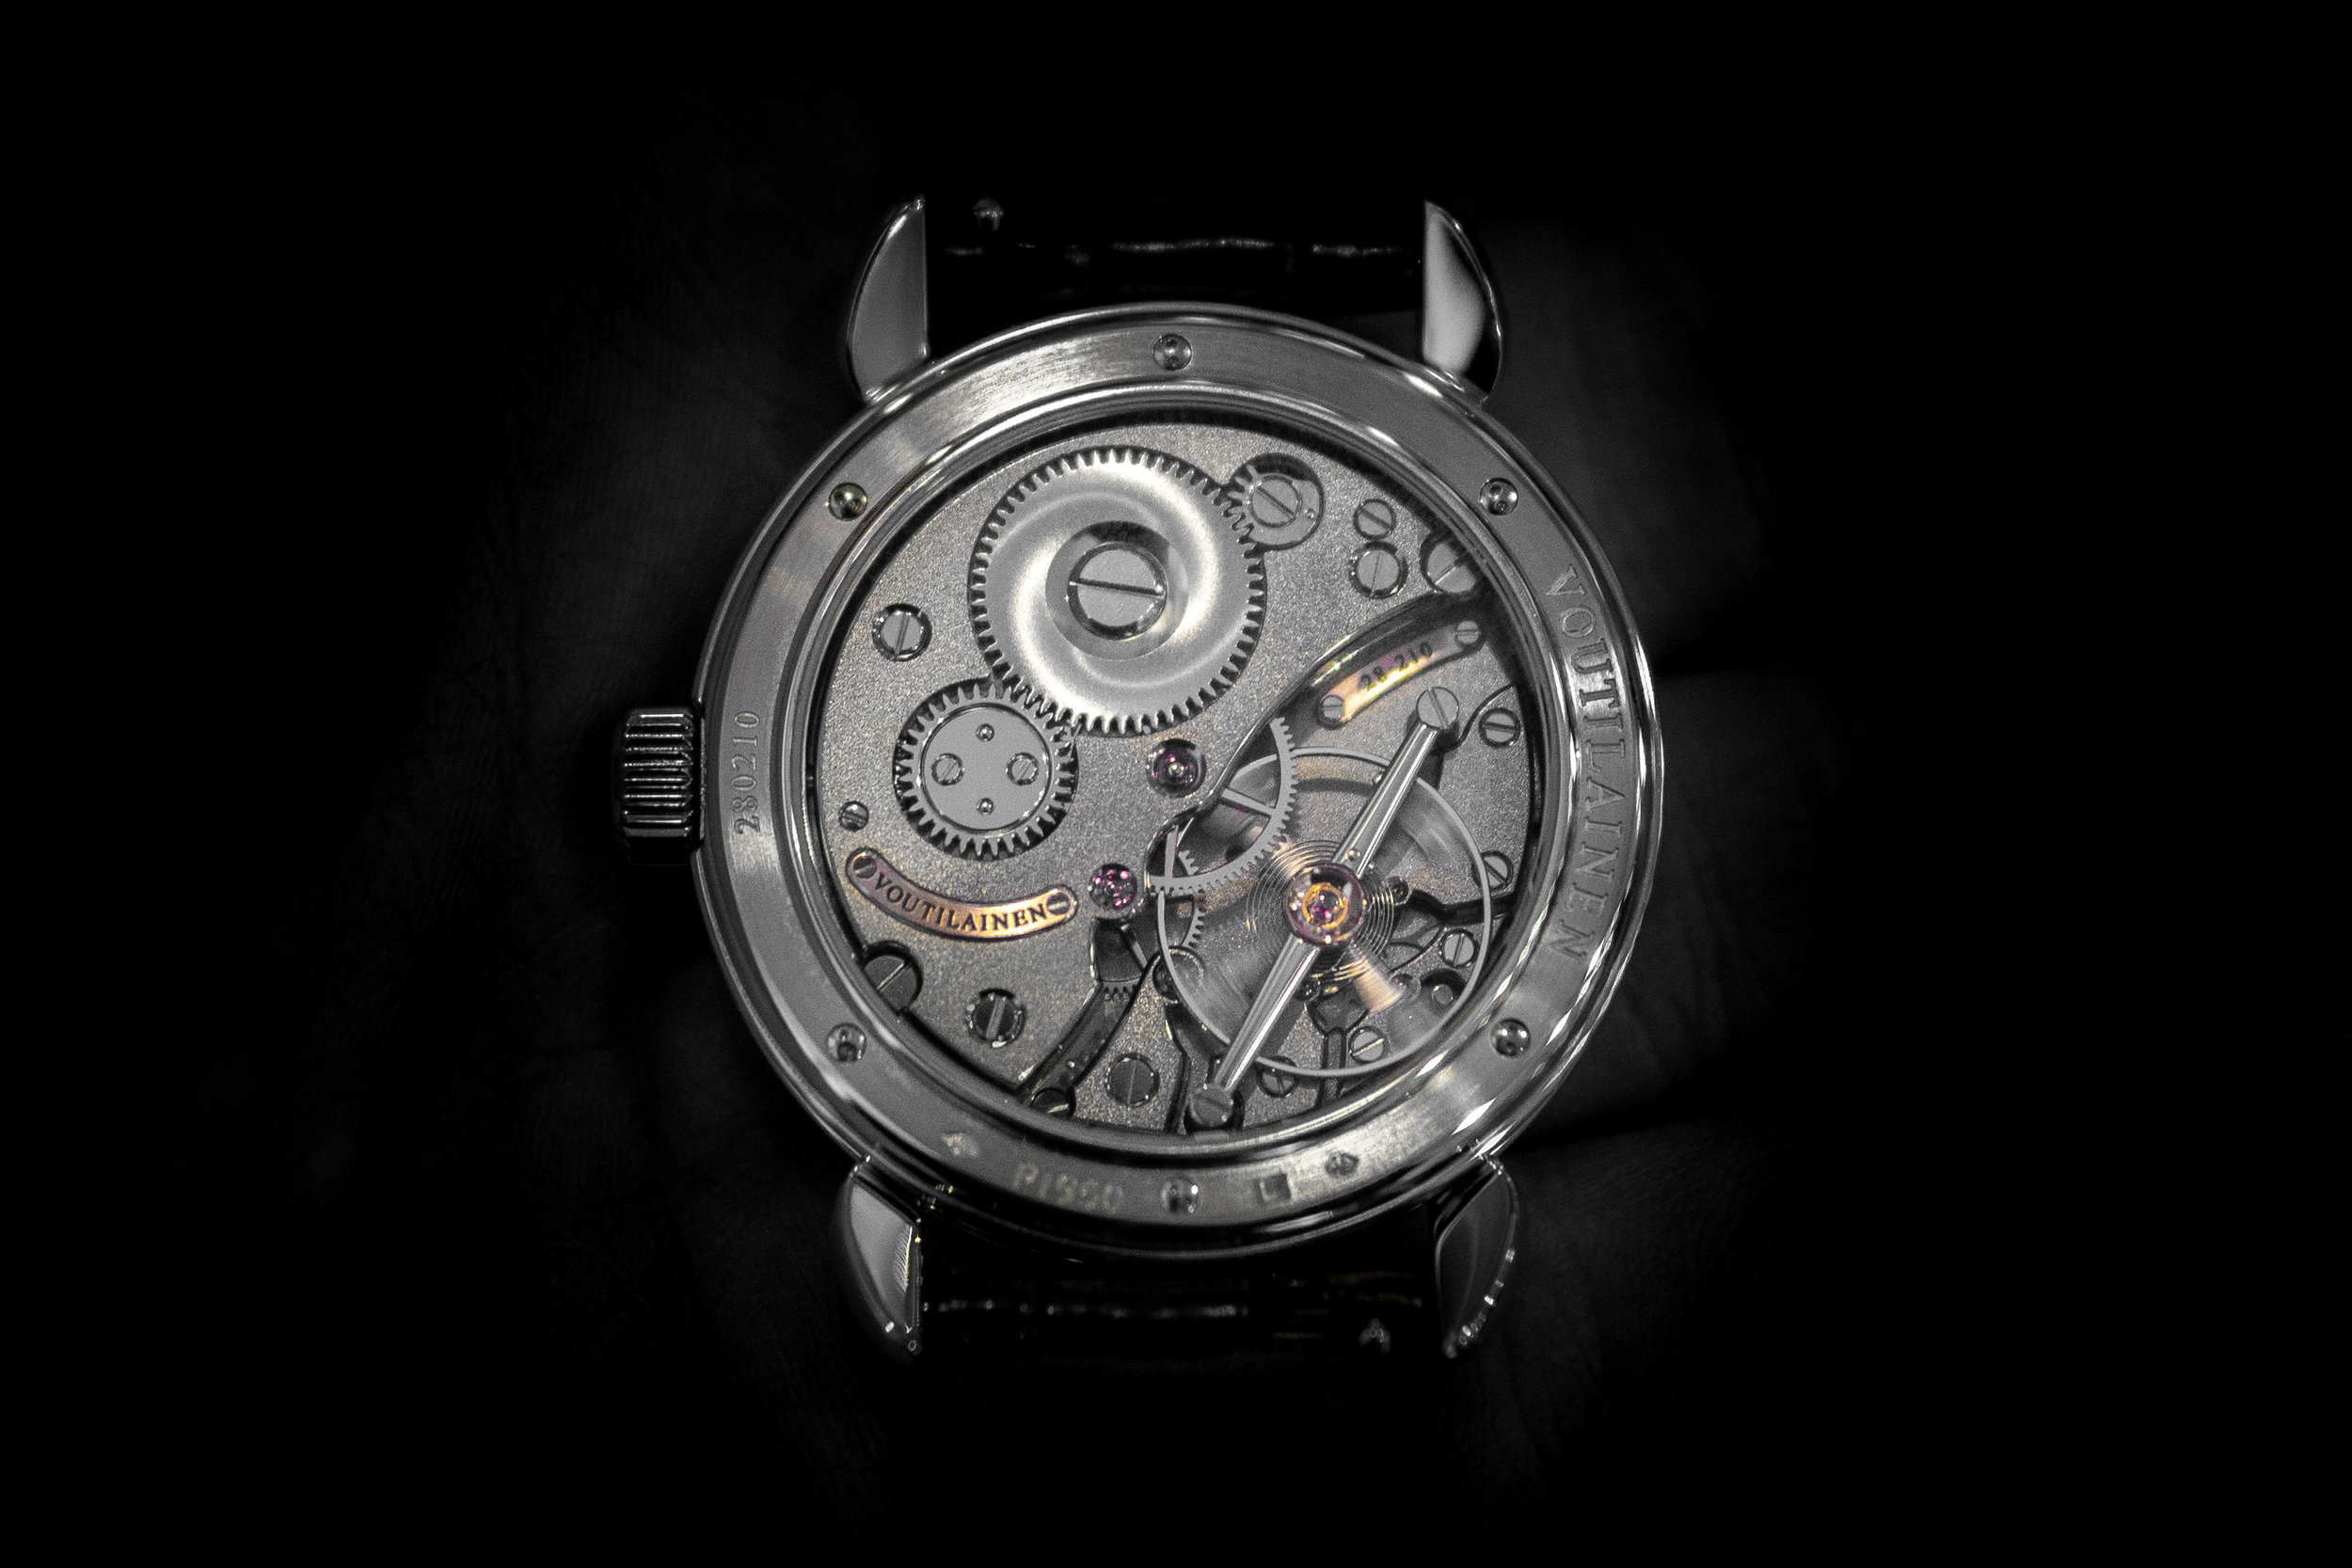 The back of the Voutilainen Vingt-8. The balance wheel on the lower right demands a lot of attention when looking at the movement.